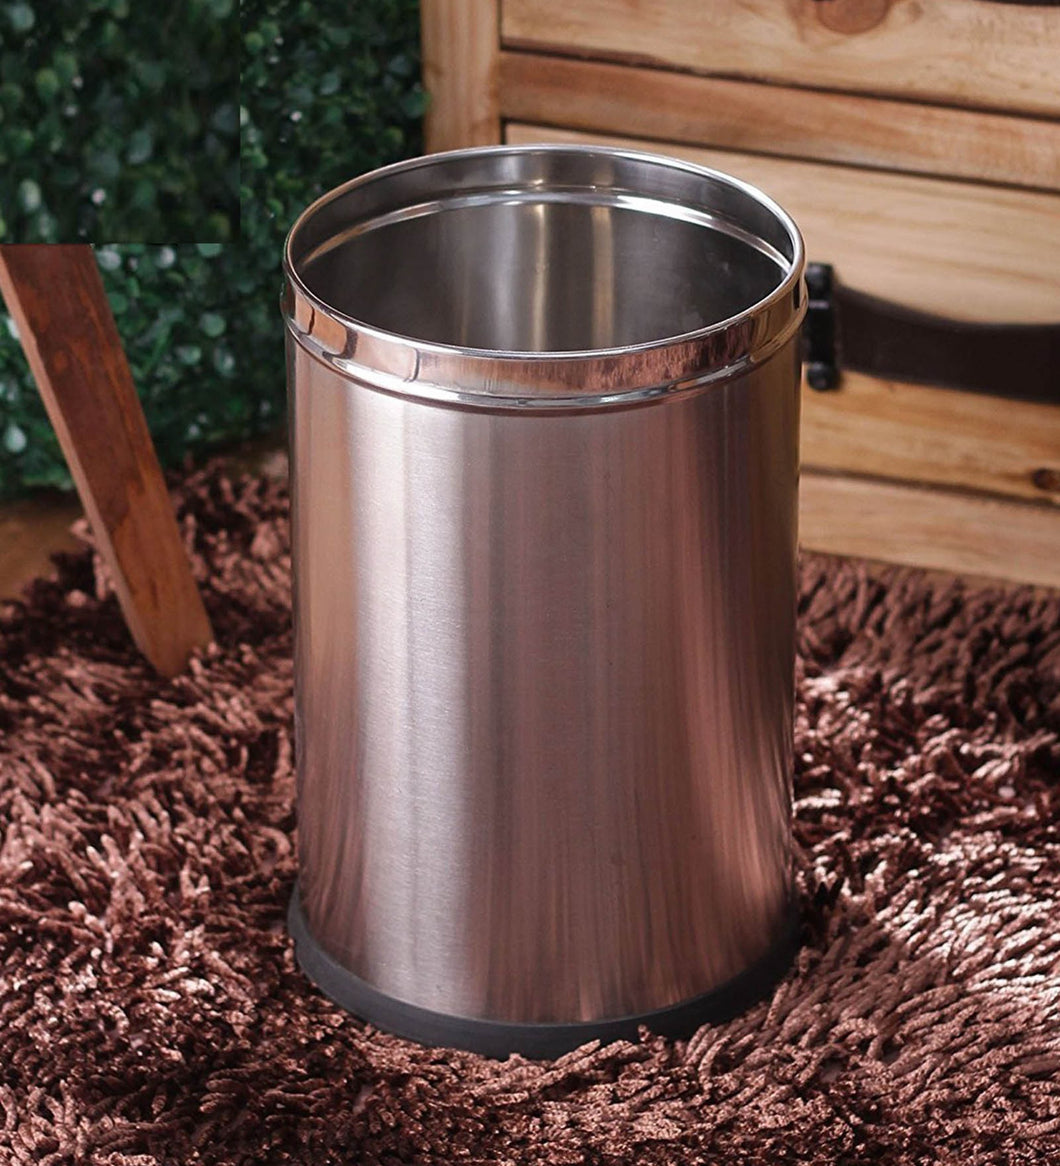 Parasnath Stainless Steel Plain Open Dustbin, 6L - 7 X 11 Inch - PARASNATH MADE IN INDIA